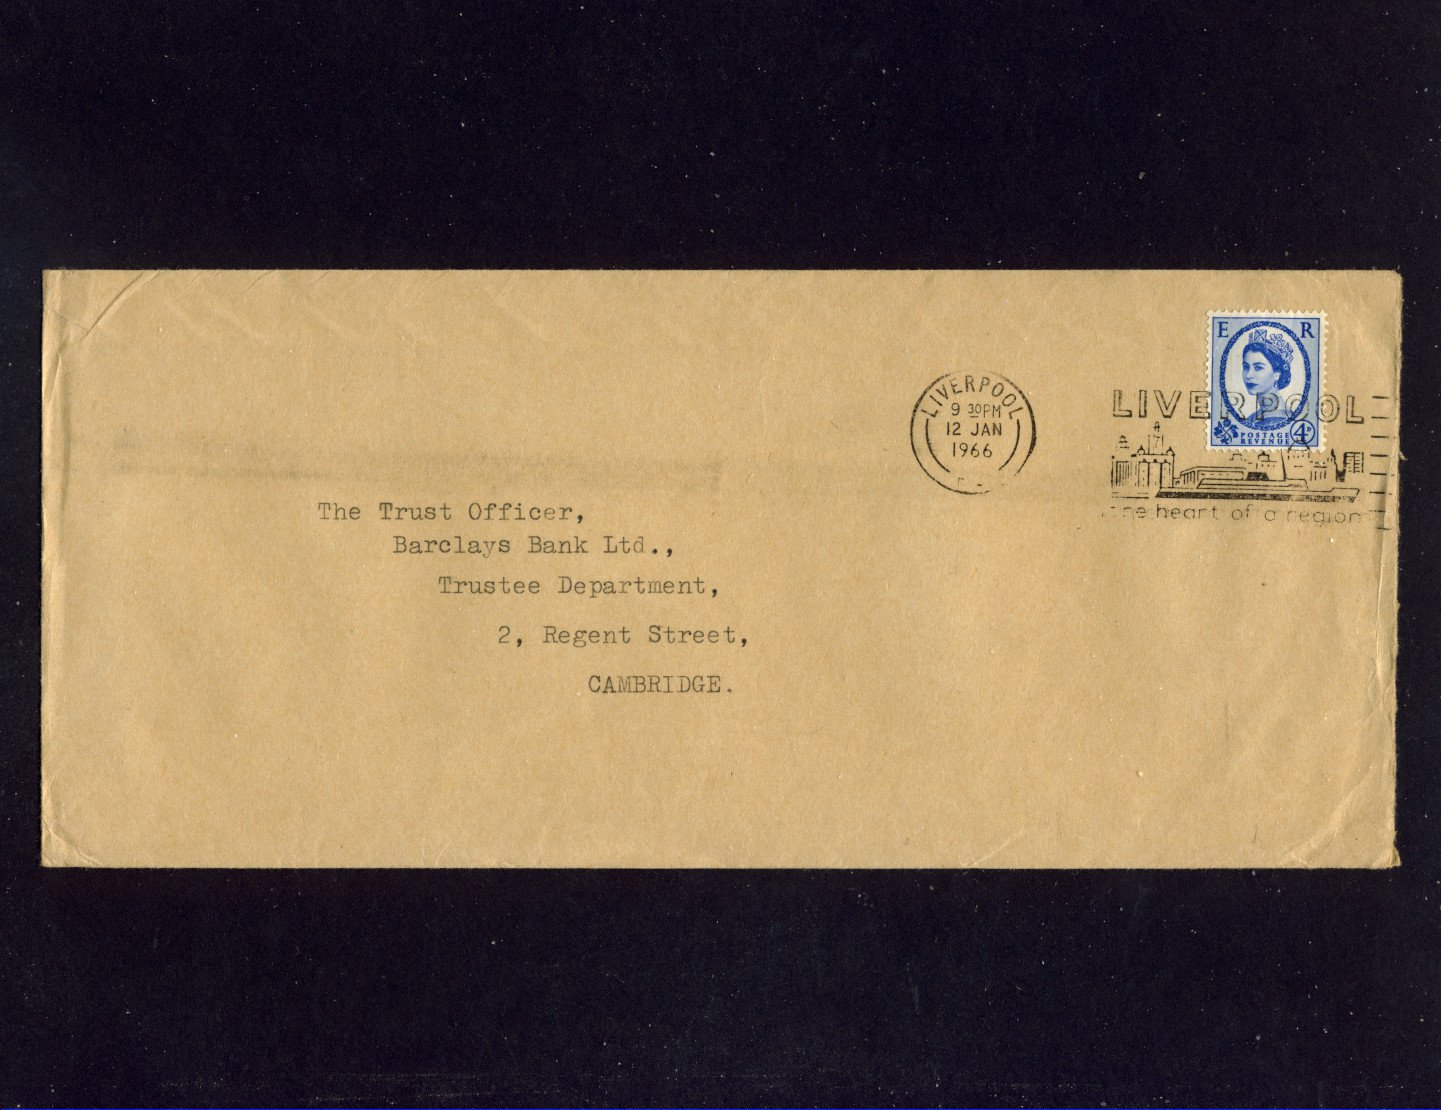 Slogan Postmark - LIVERPOOL The Heart of a Region 1966 on commercially used envelope